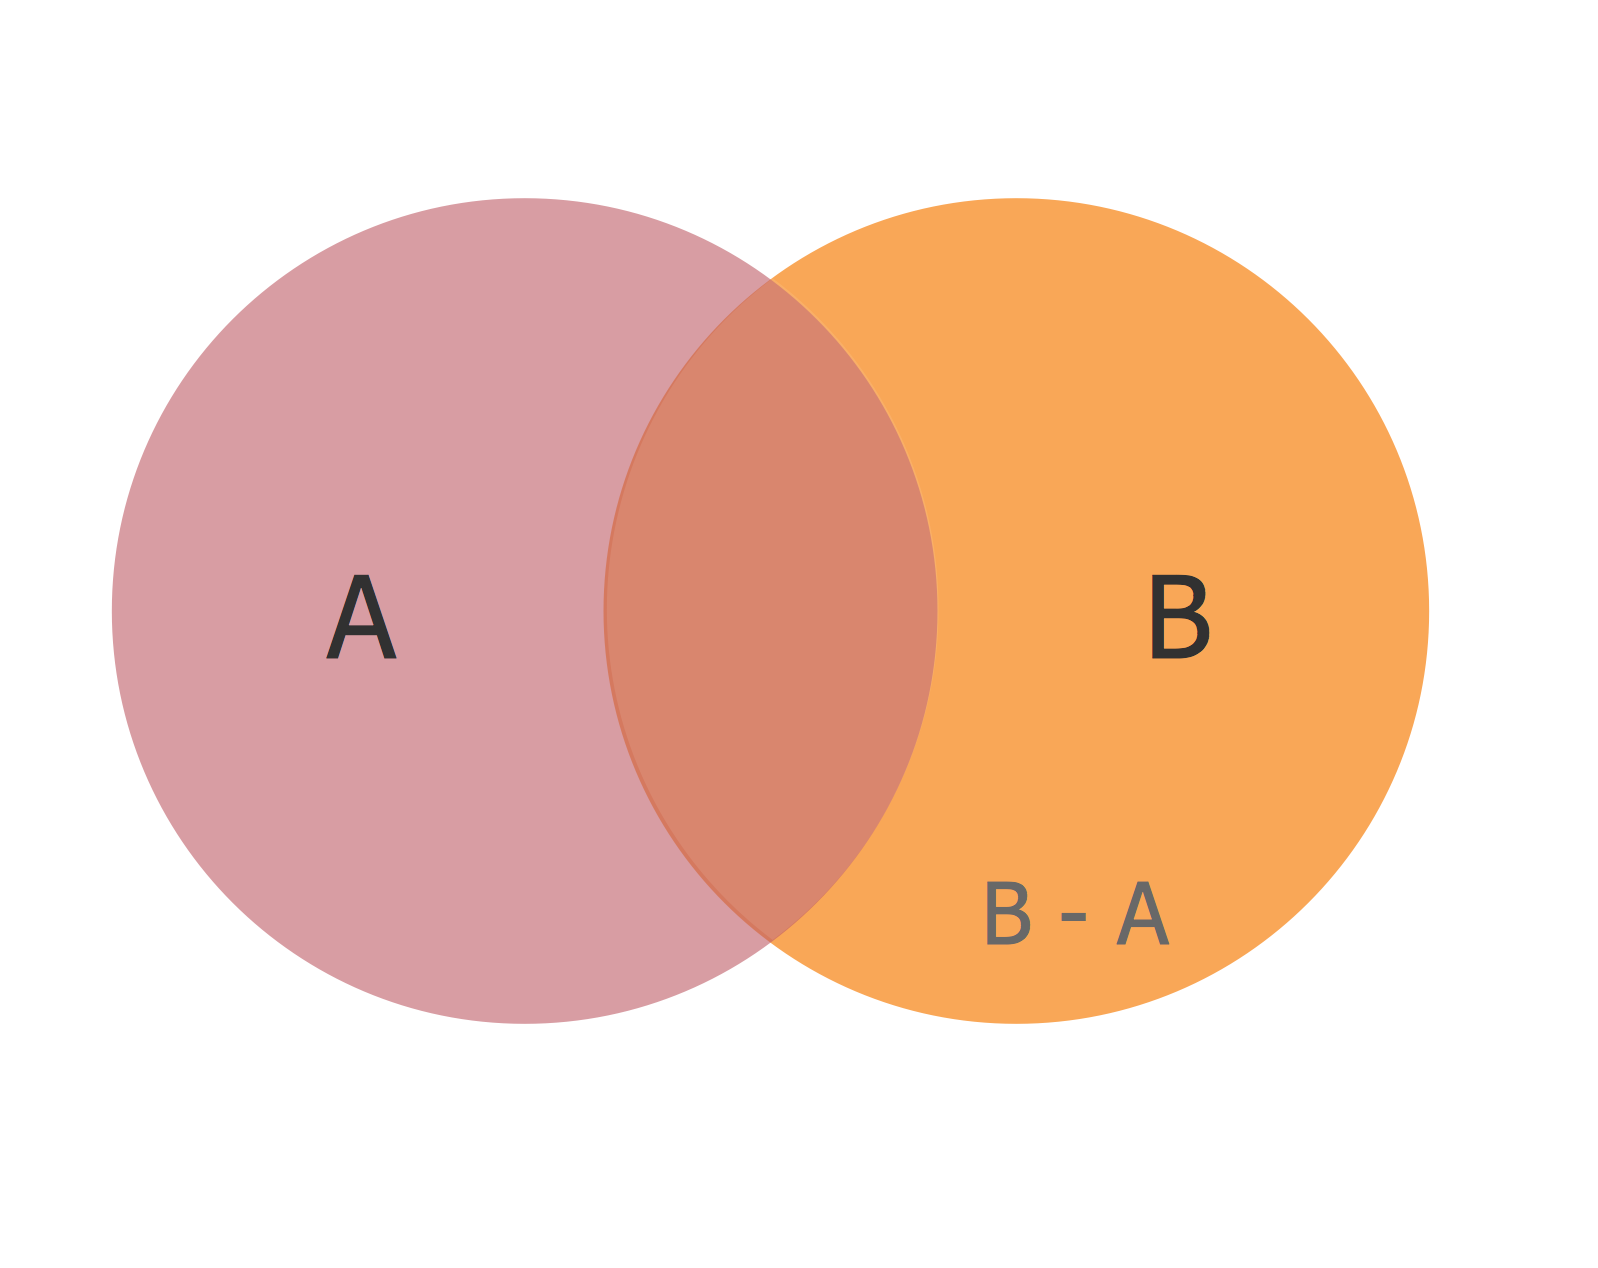 Basic Circles Venn Diagram